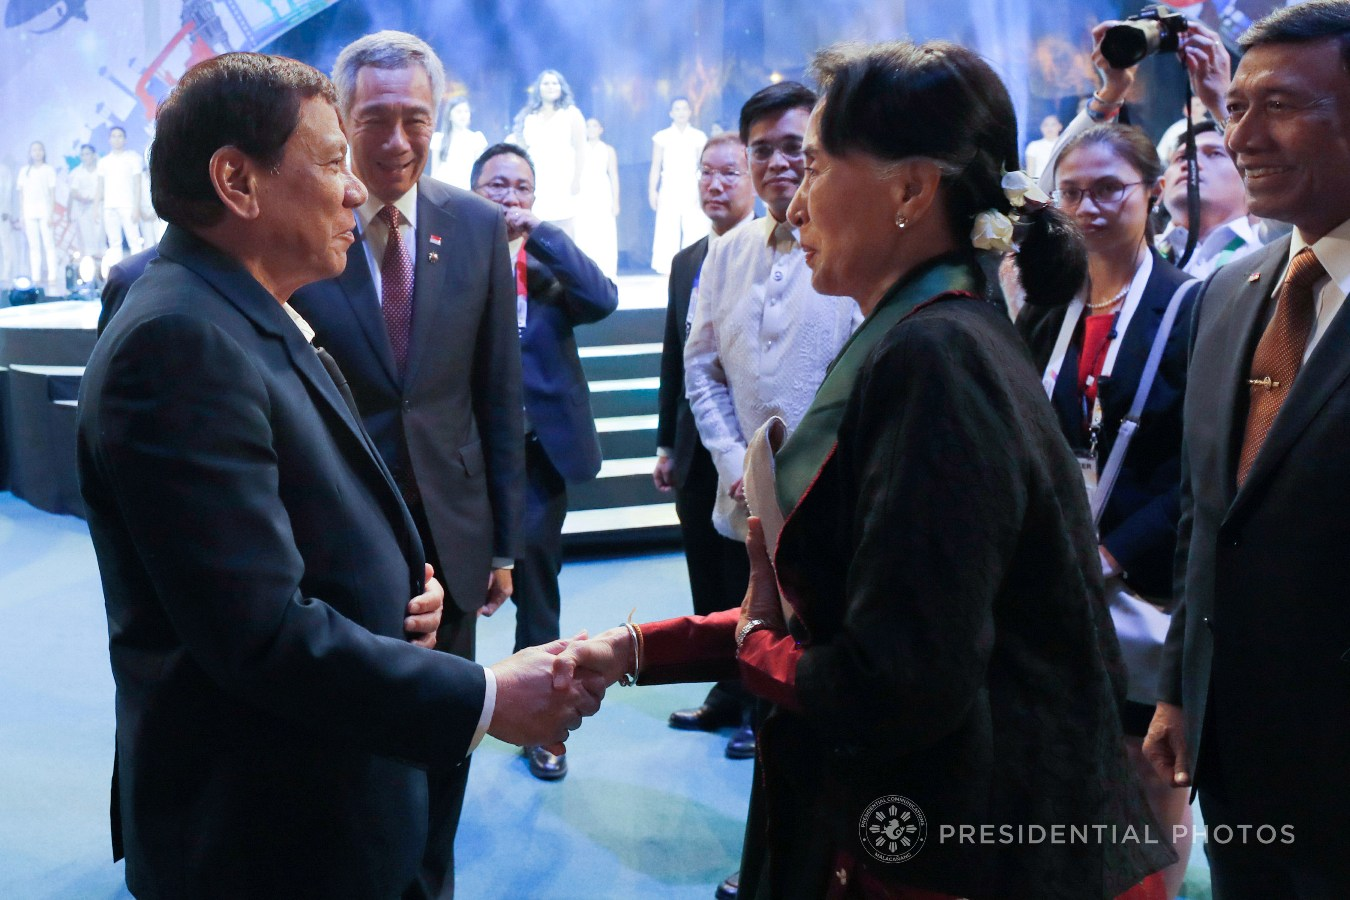 President Rodrigo Roa Duterte and State Counsellor of Myanmar Daw Aung San Suu Kyi exchange pleasantries following the closing ceremony of the 31st Association of Southeast Asian Nations (ASEAN) Summit and Related Summits at the Philippine International Convention Center on November 14, 2017. REY BANIQUET/PRESIDENTIAL PHOTO